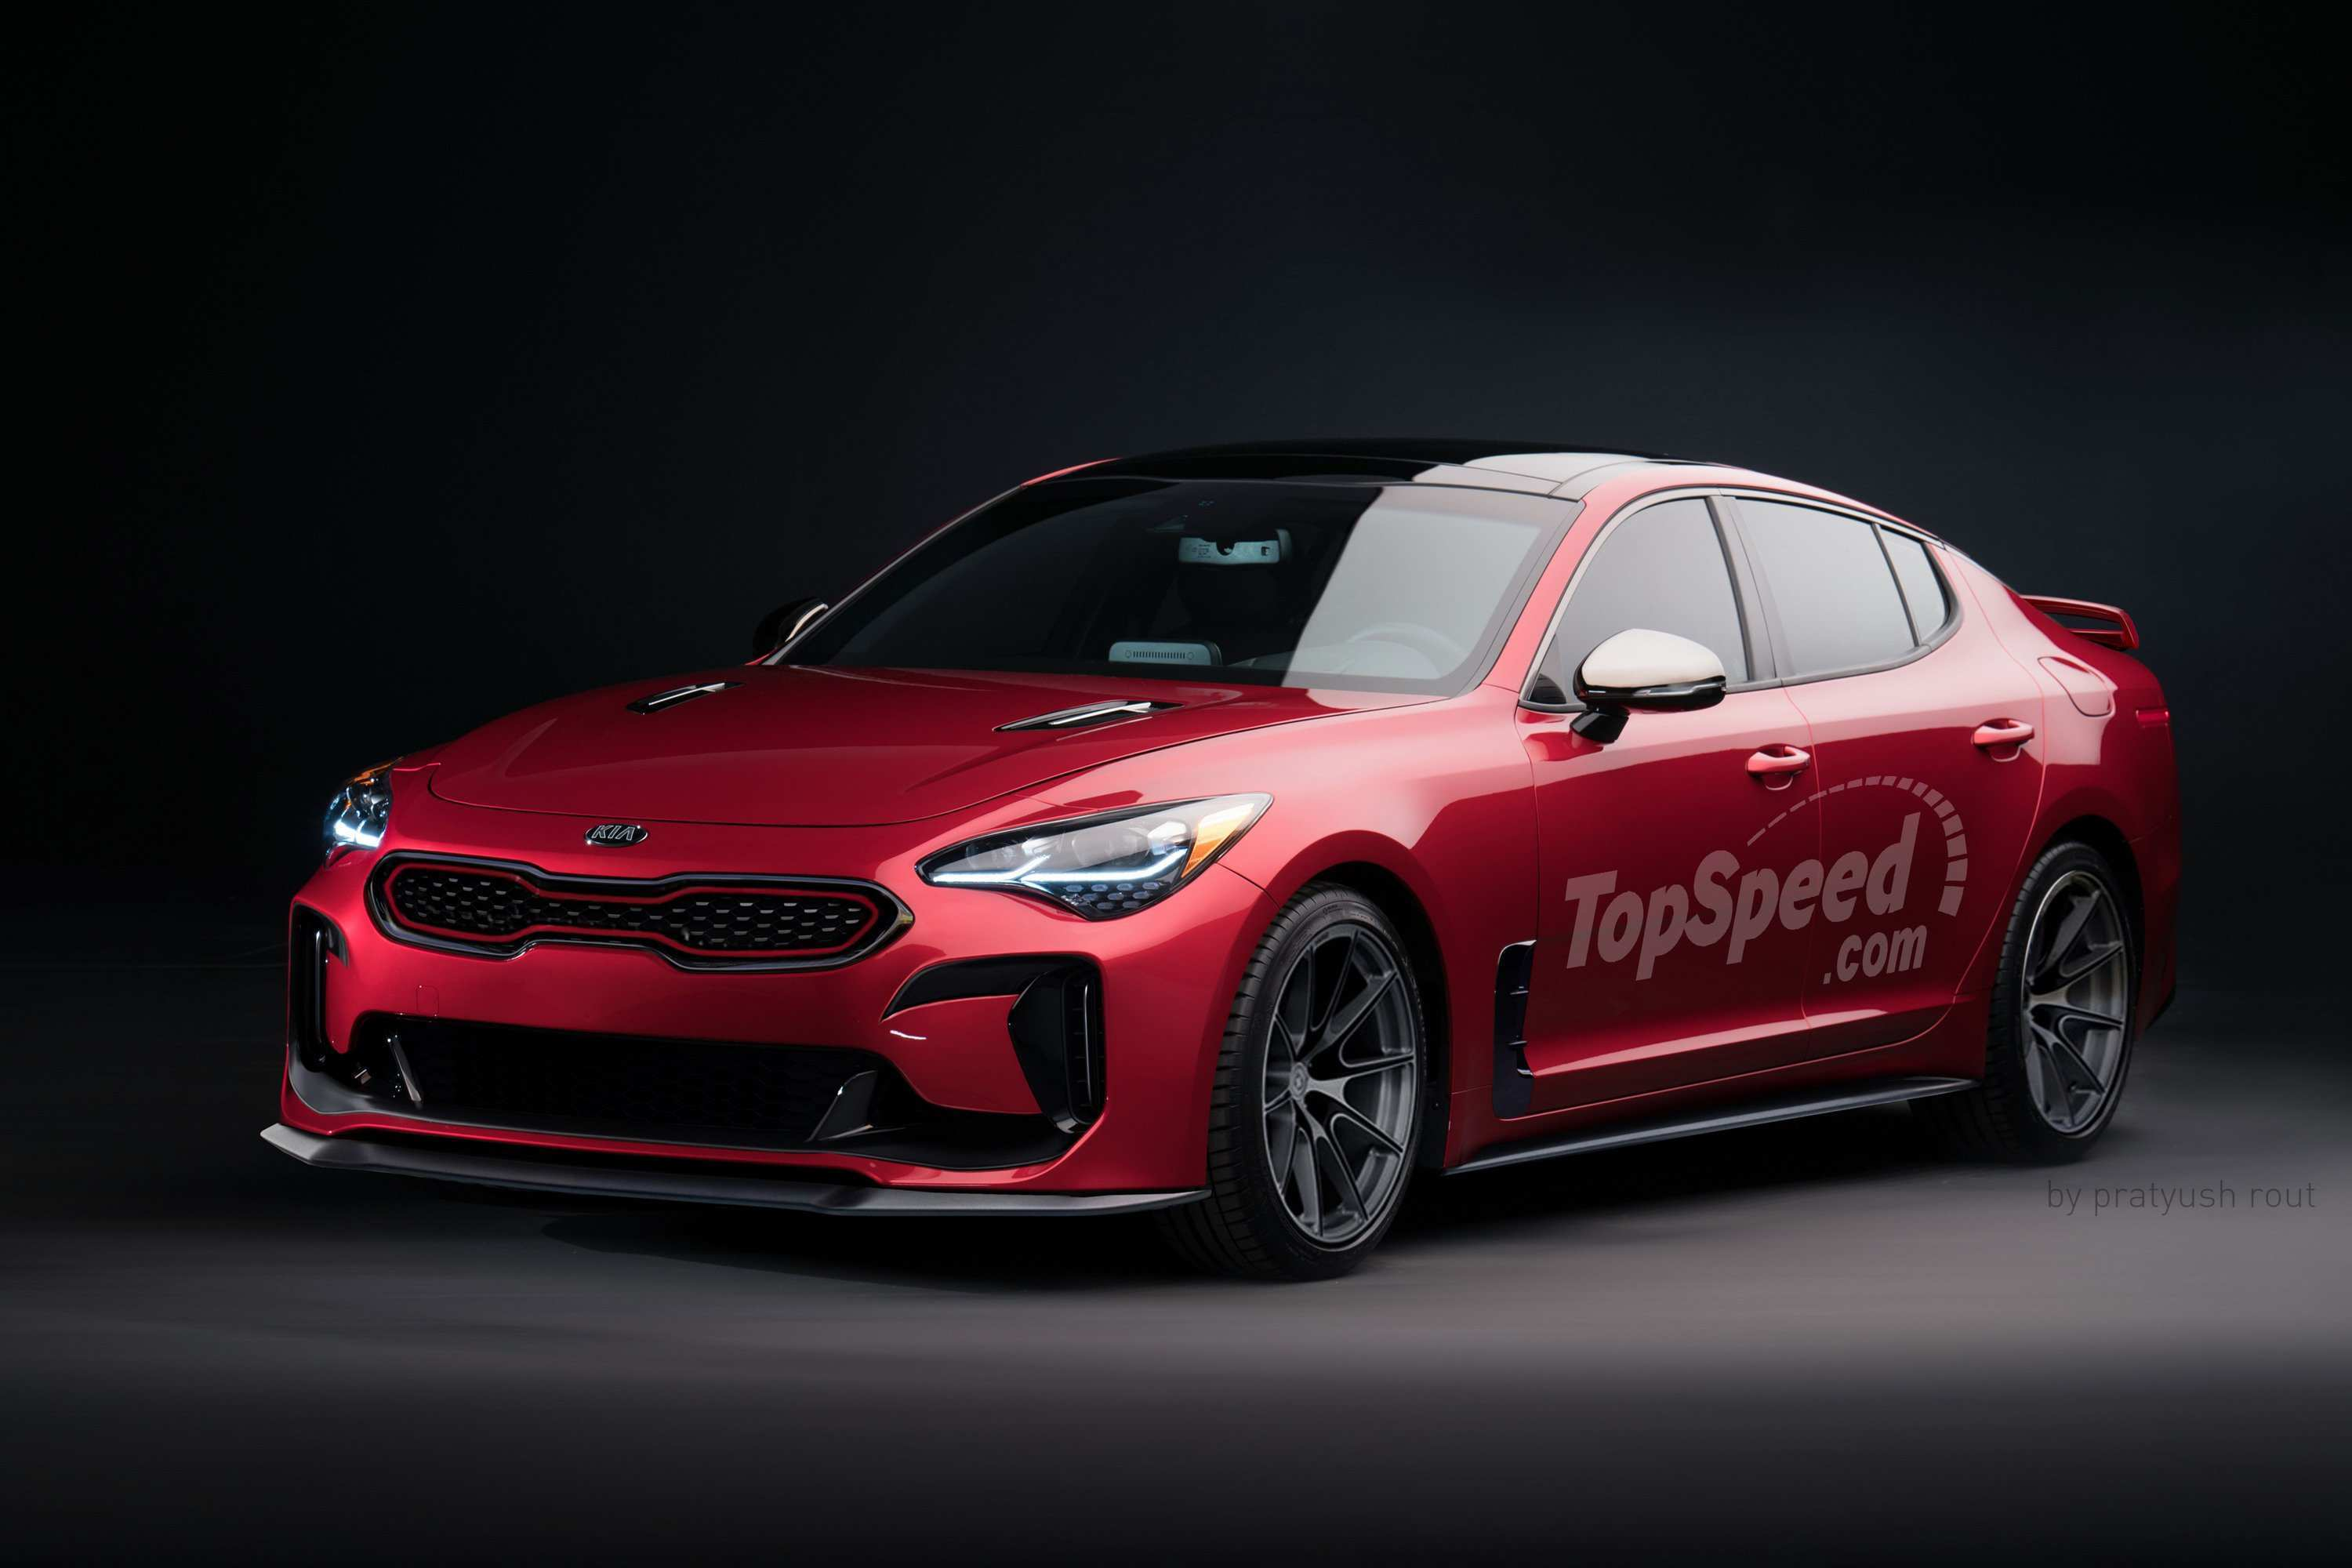 92 Best Review Kia Gt 2019 Interior for Kia Gt 2019